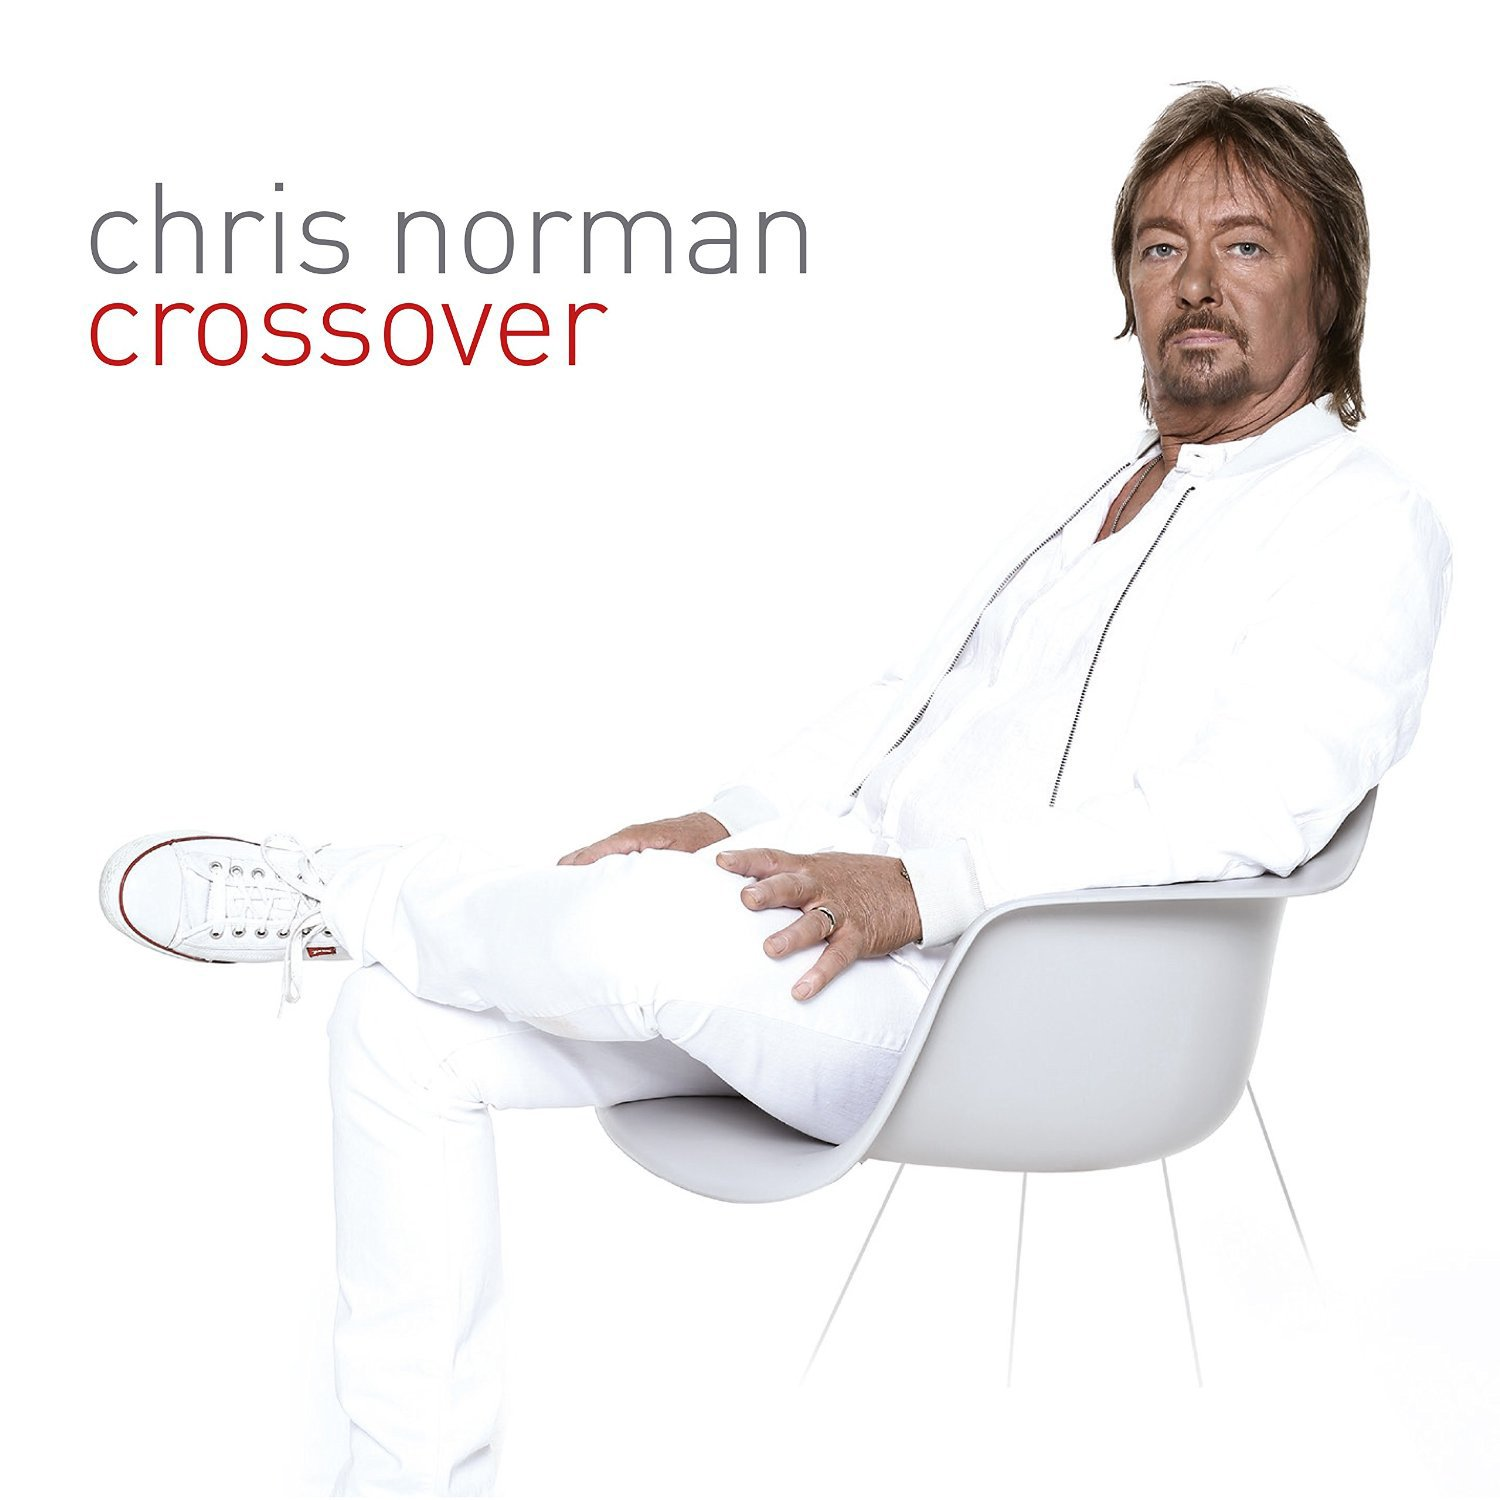 CHRIS NORMAN Crossover